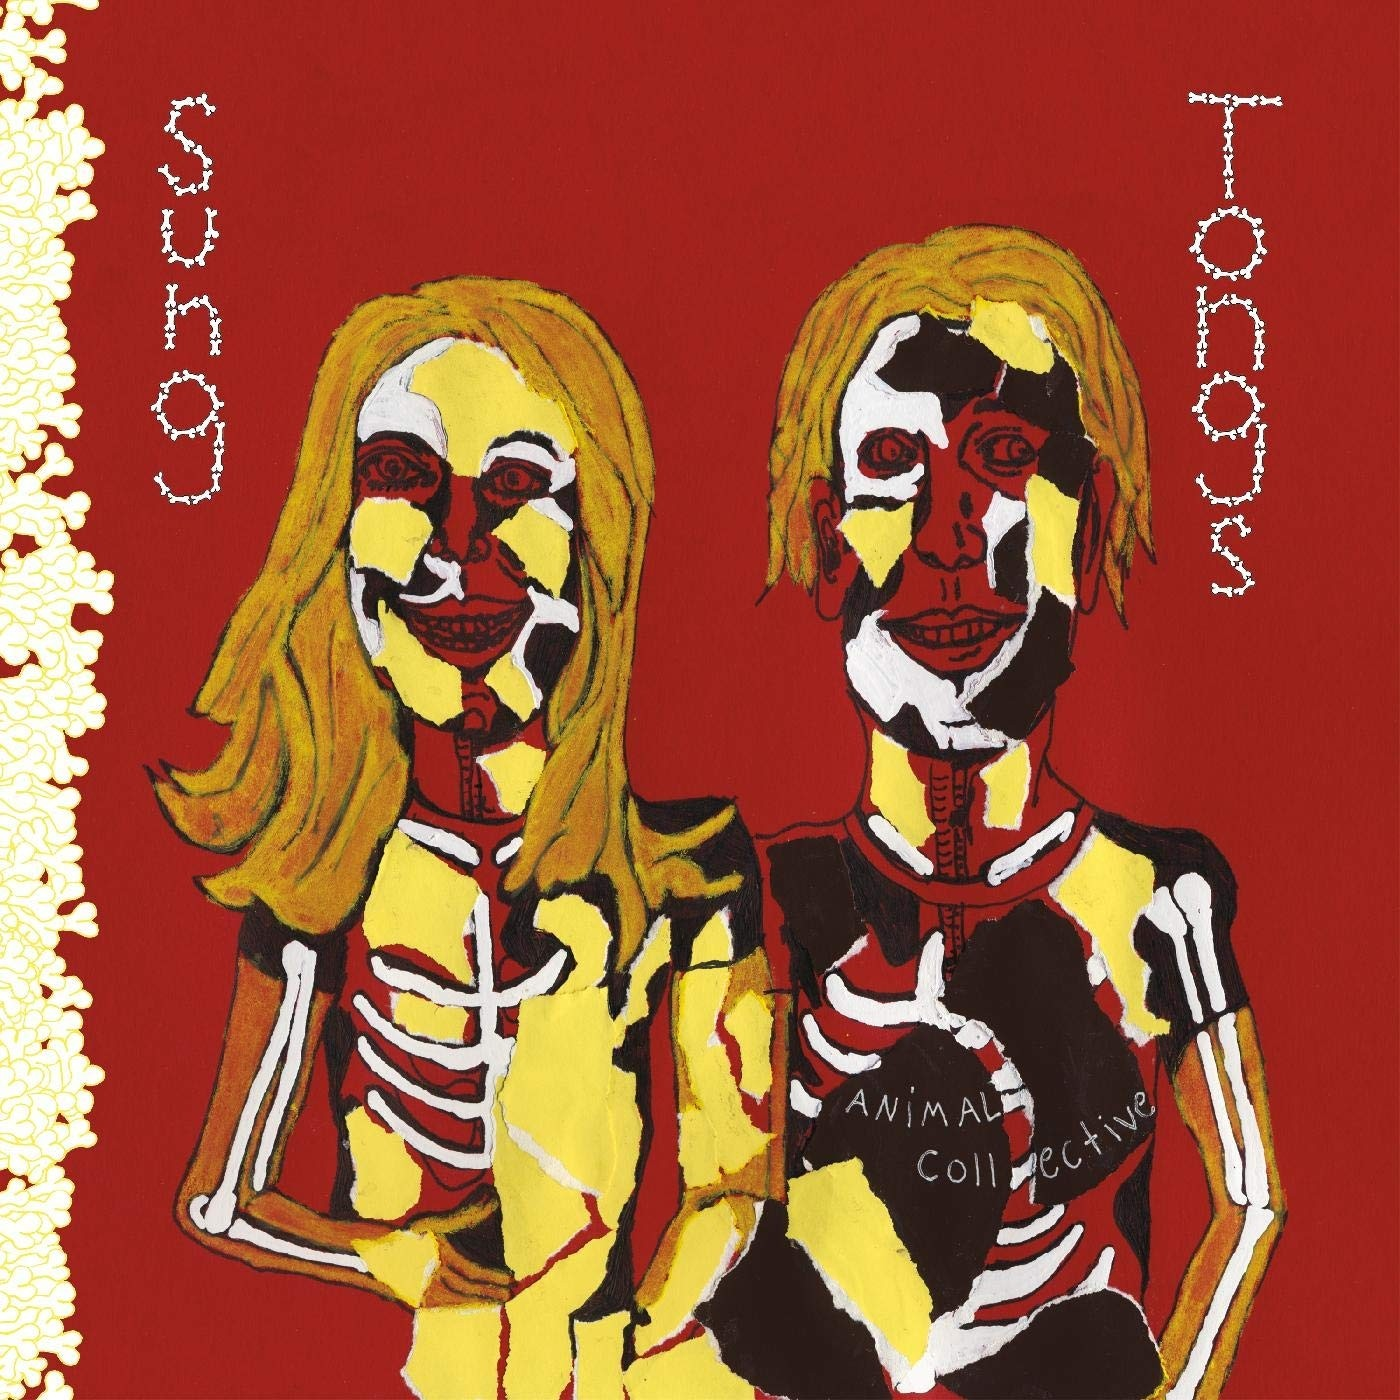 Animal Collective - Sung Tongs 2XLP